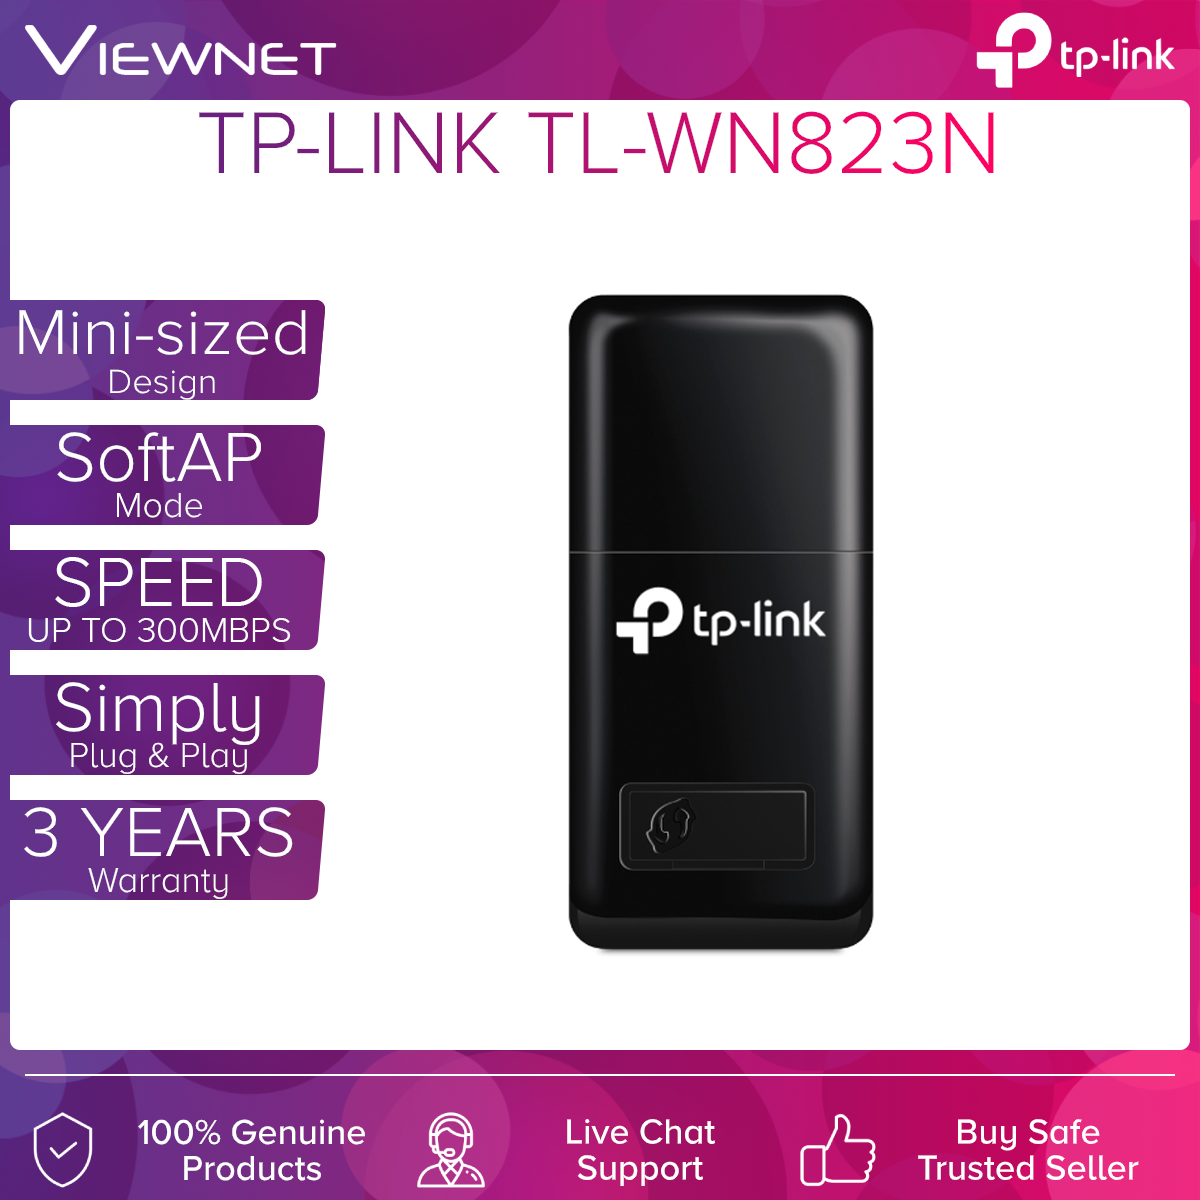 TP-LINK Mini USB Wireless WIFI adapter (TL-WN823N) with Soft AP, 300Mbps